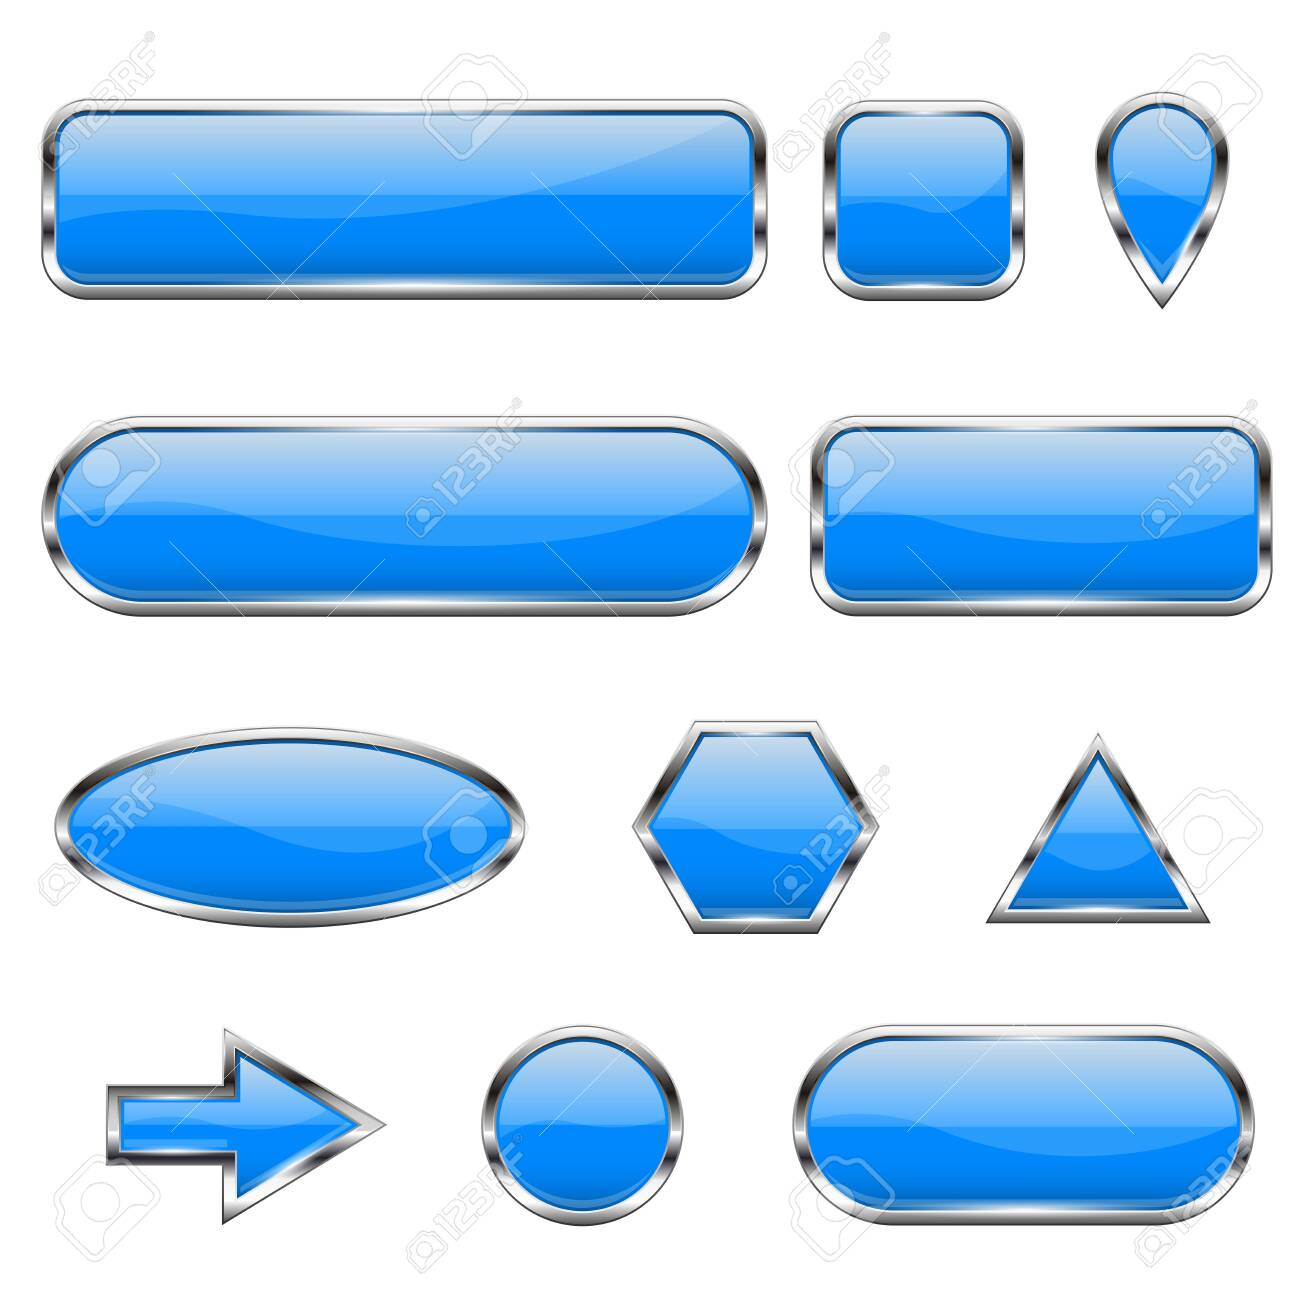 Blue 3d icons. Glass shiny buttons - 130359044